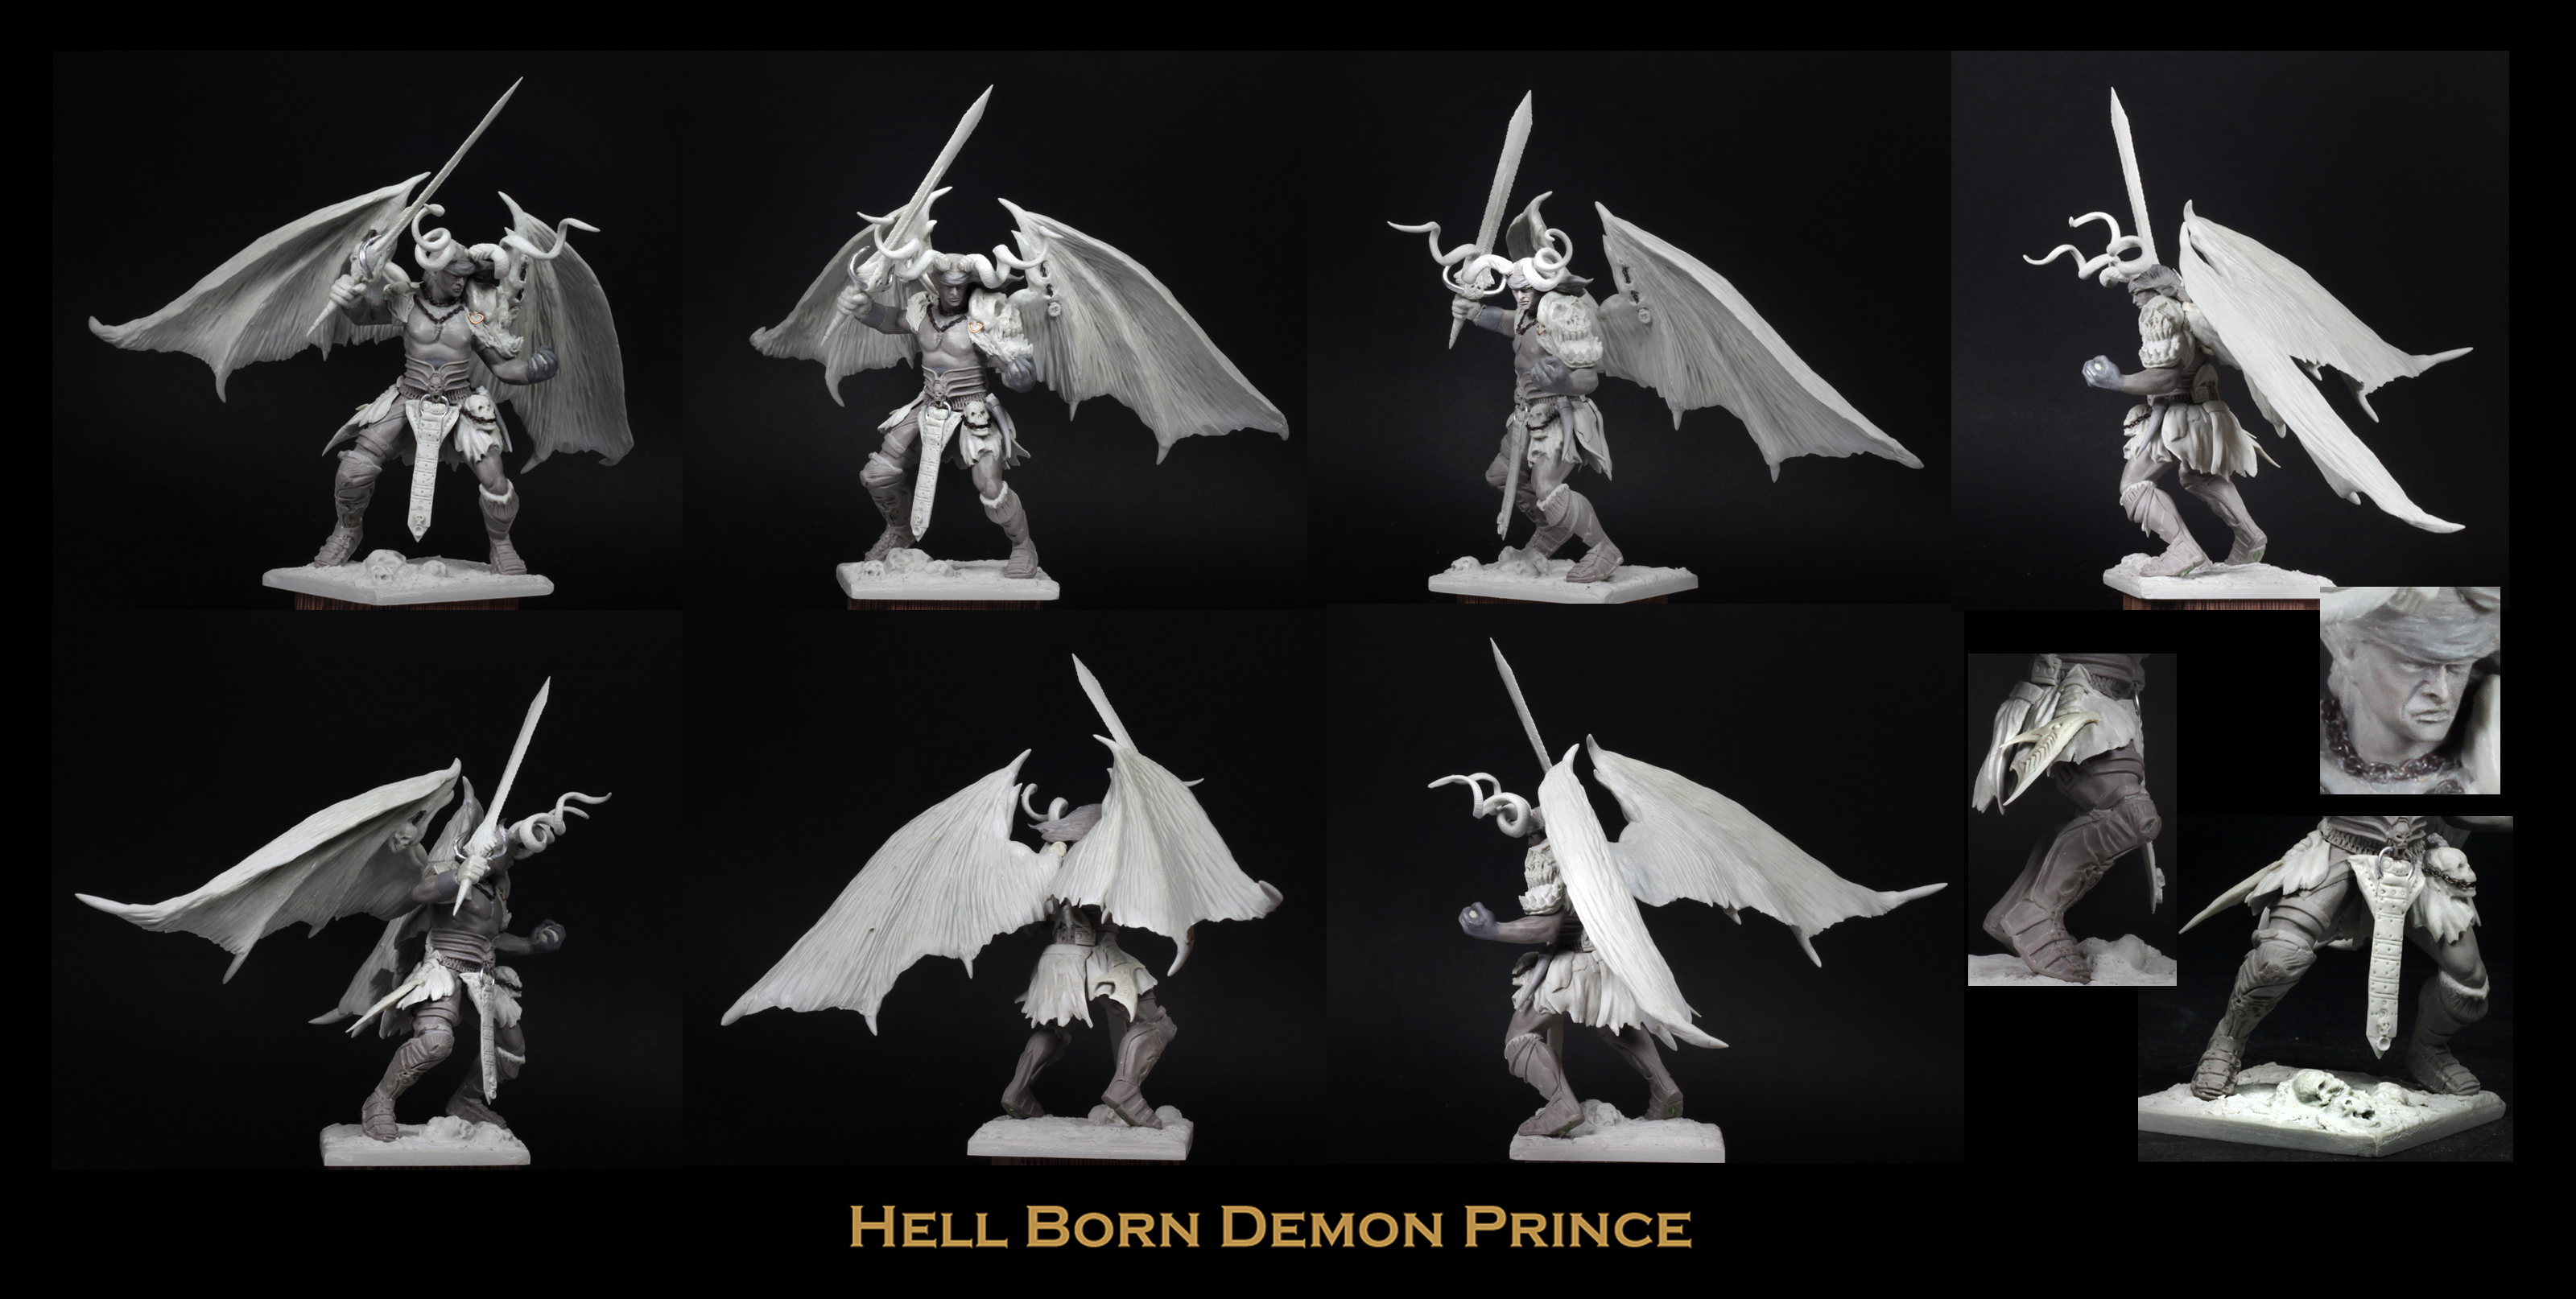 Hell Born Demon Prince